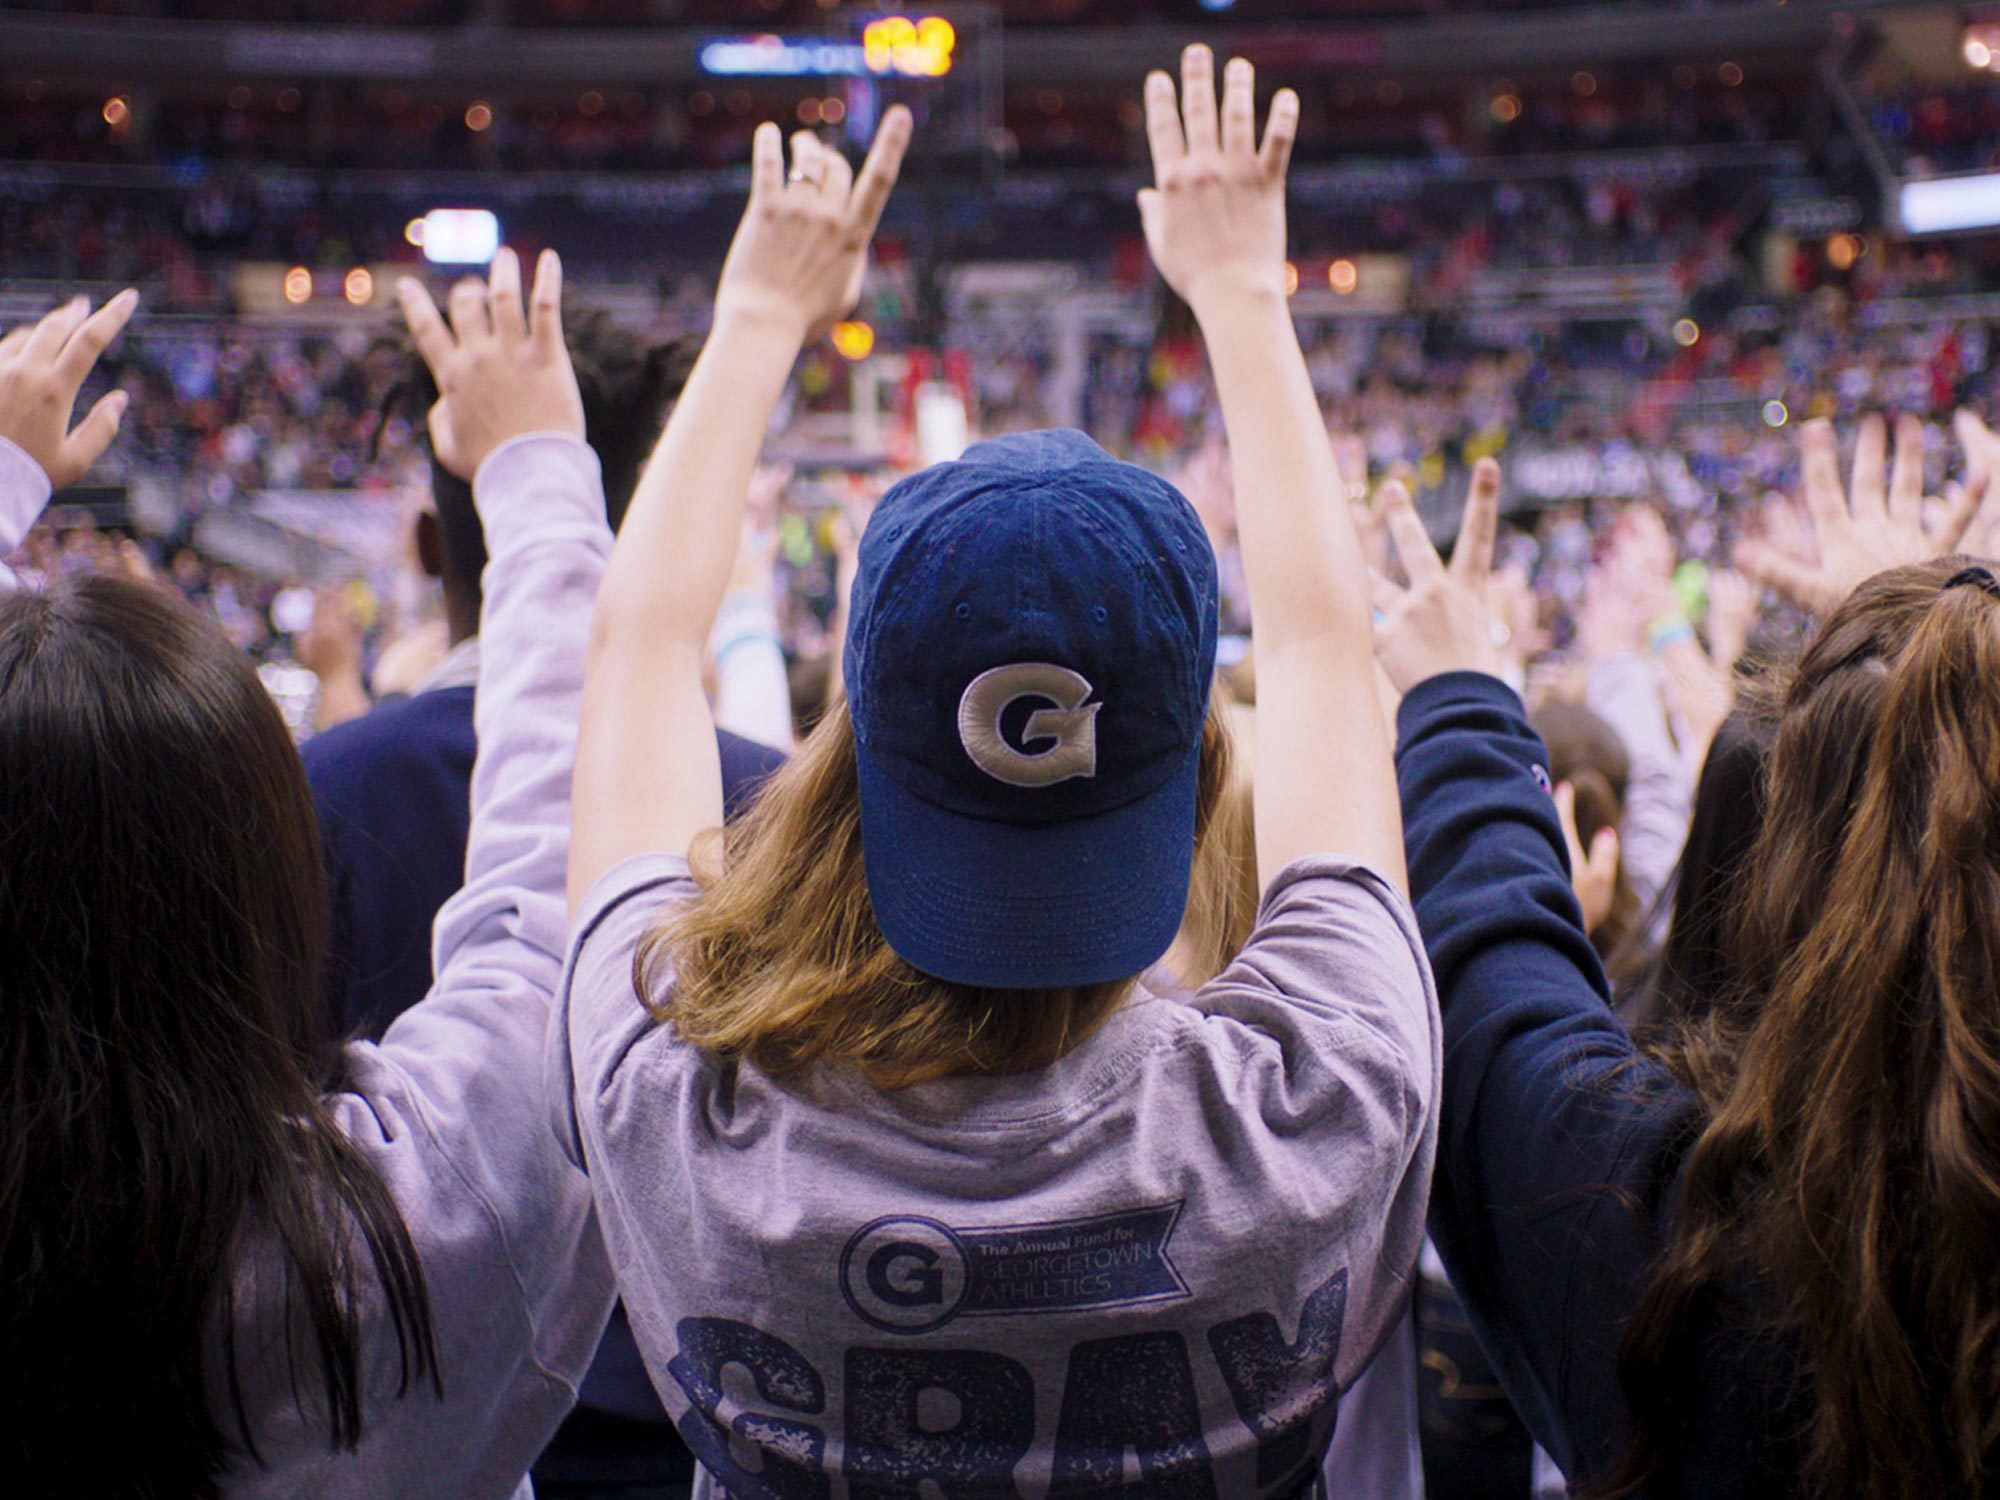 Students cheer at a sporting event in the Verizon Center.